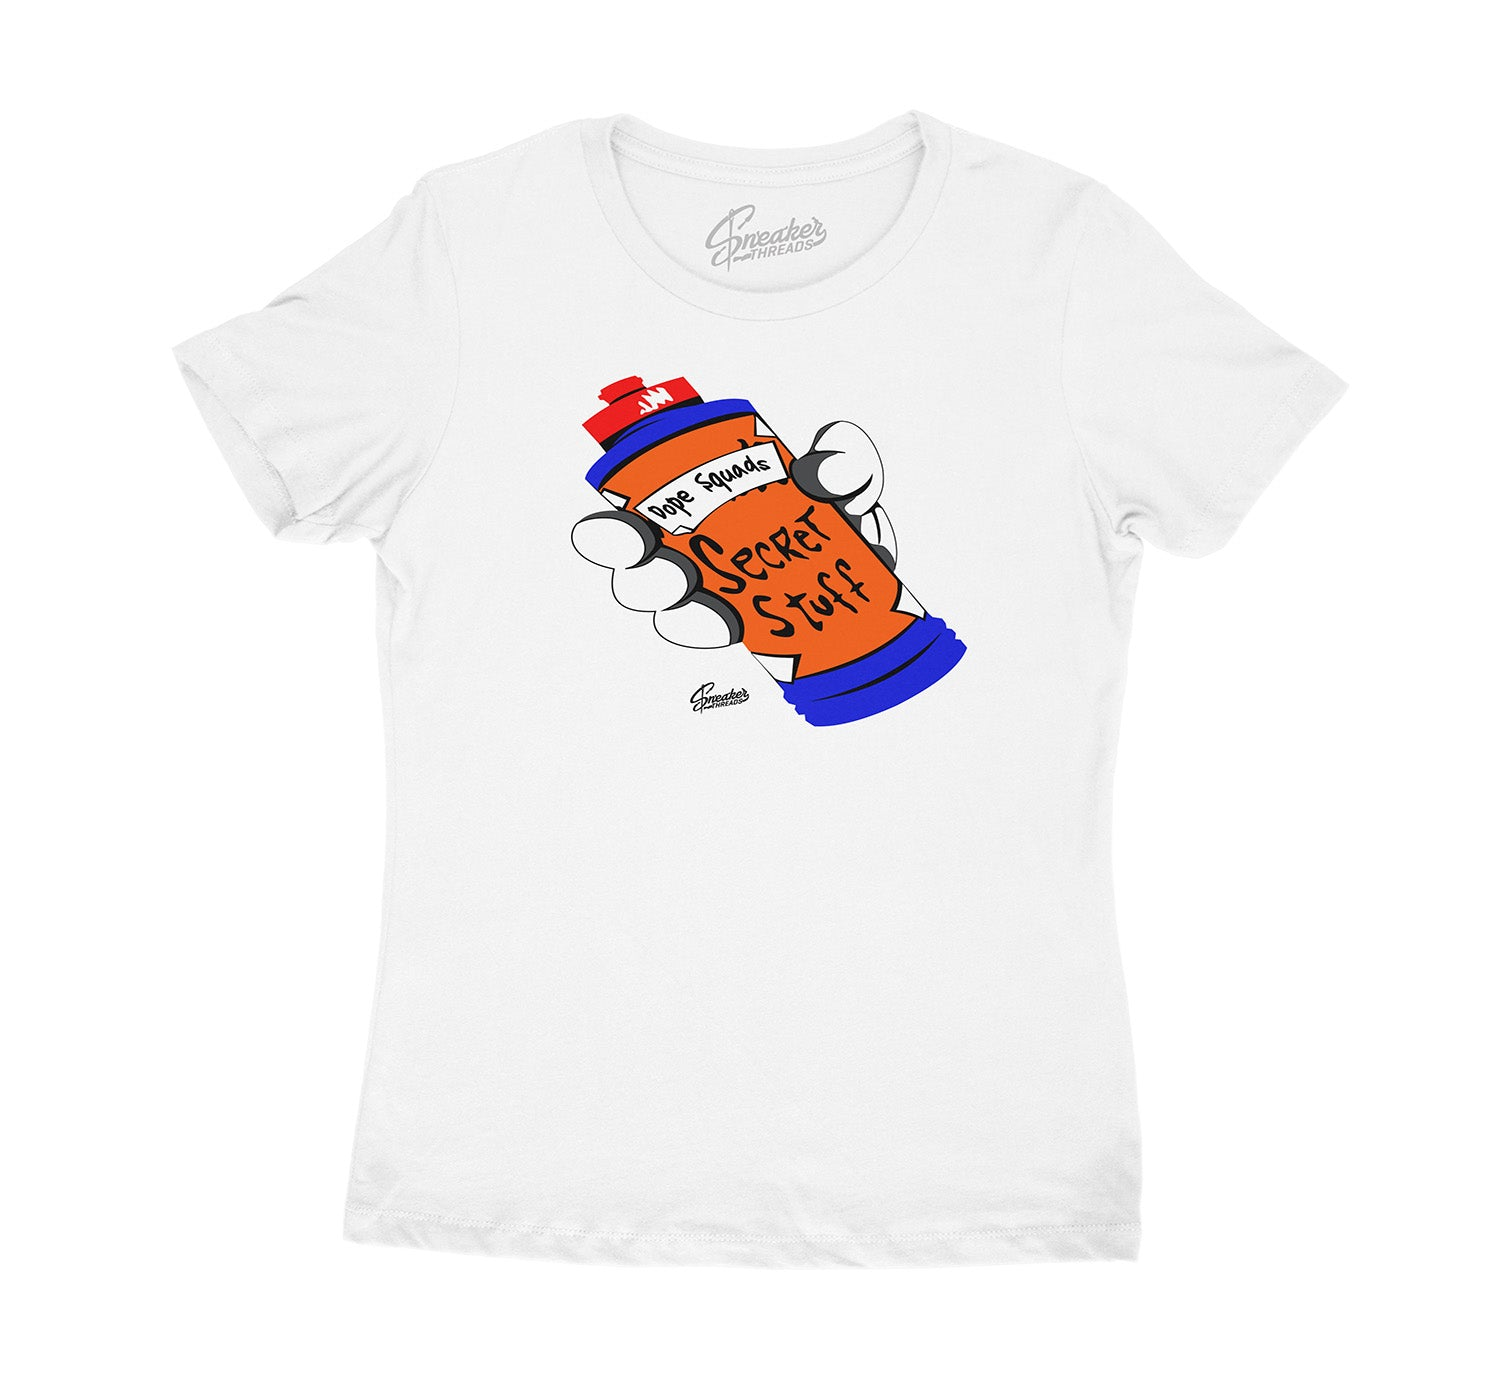 Womens Knicks 3 Shirt - Secret Stuff - White